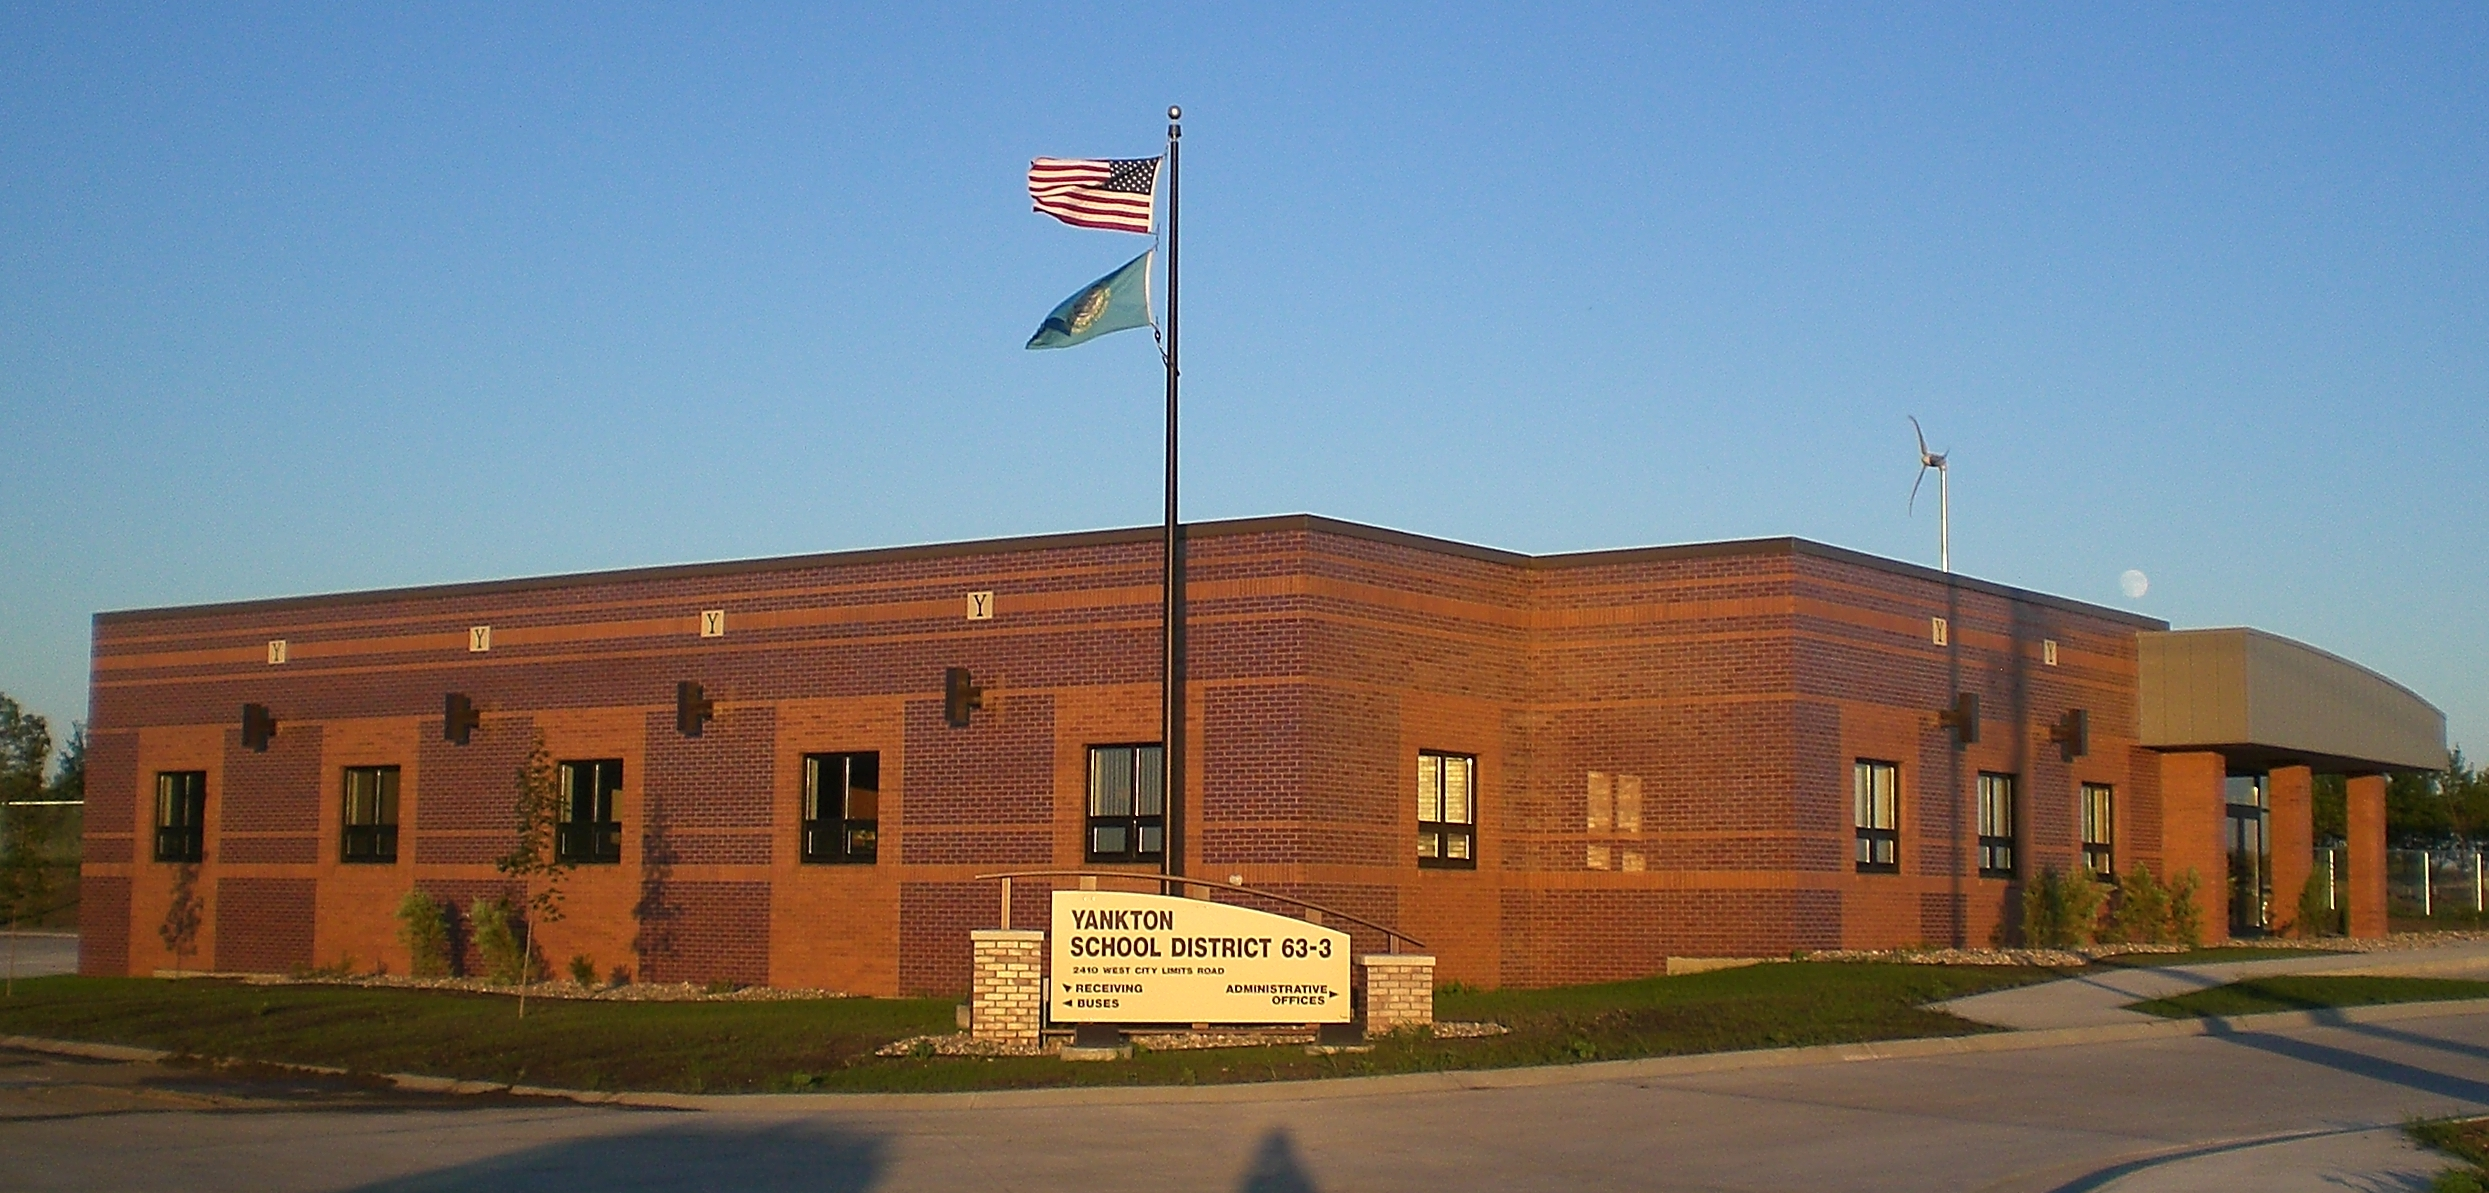 Yankton School District